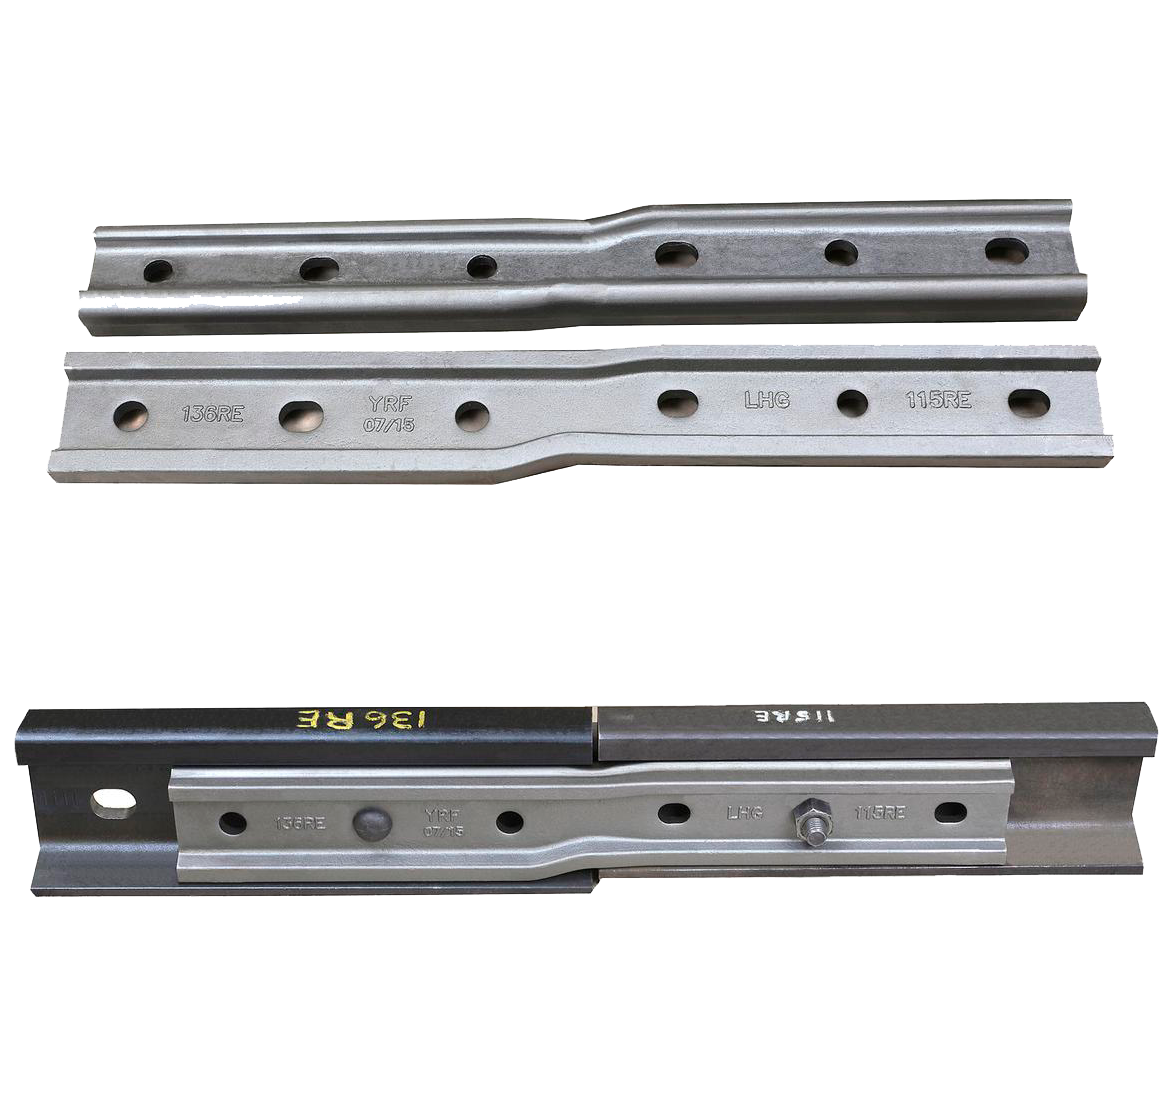 136RE-115RE Compromise Joint Bar